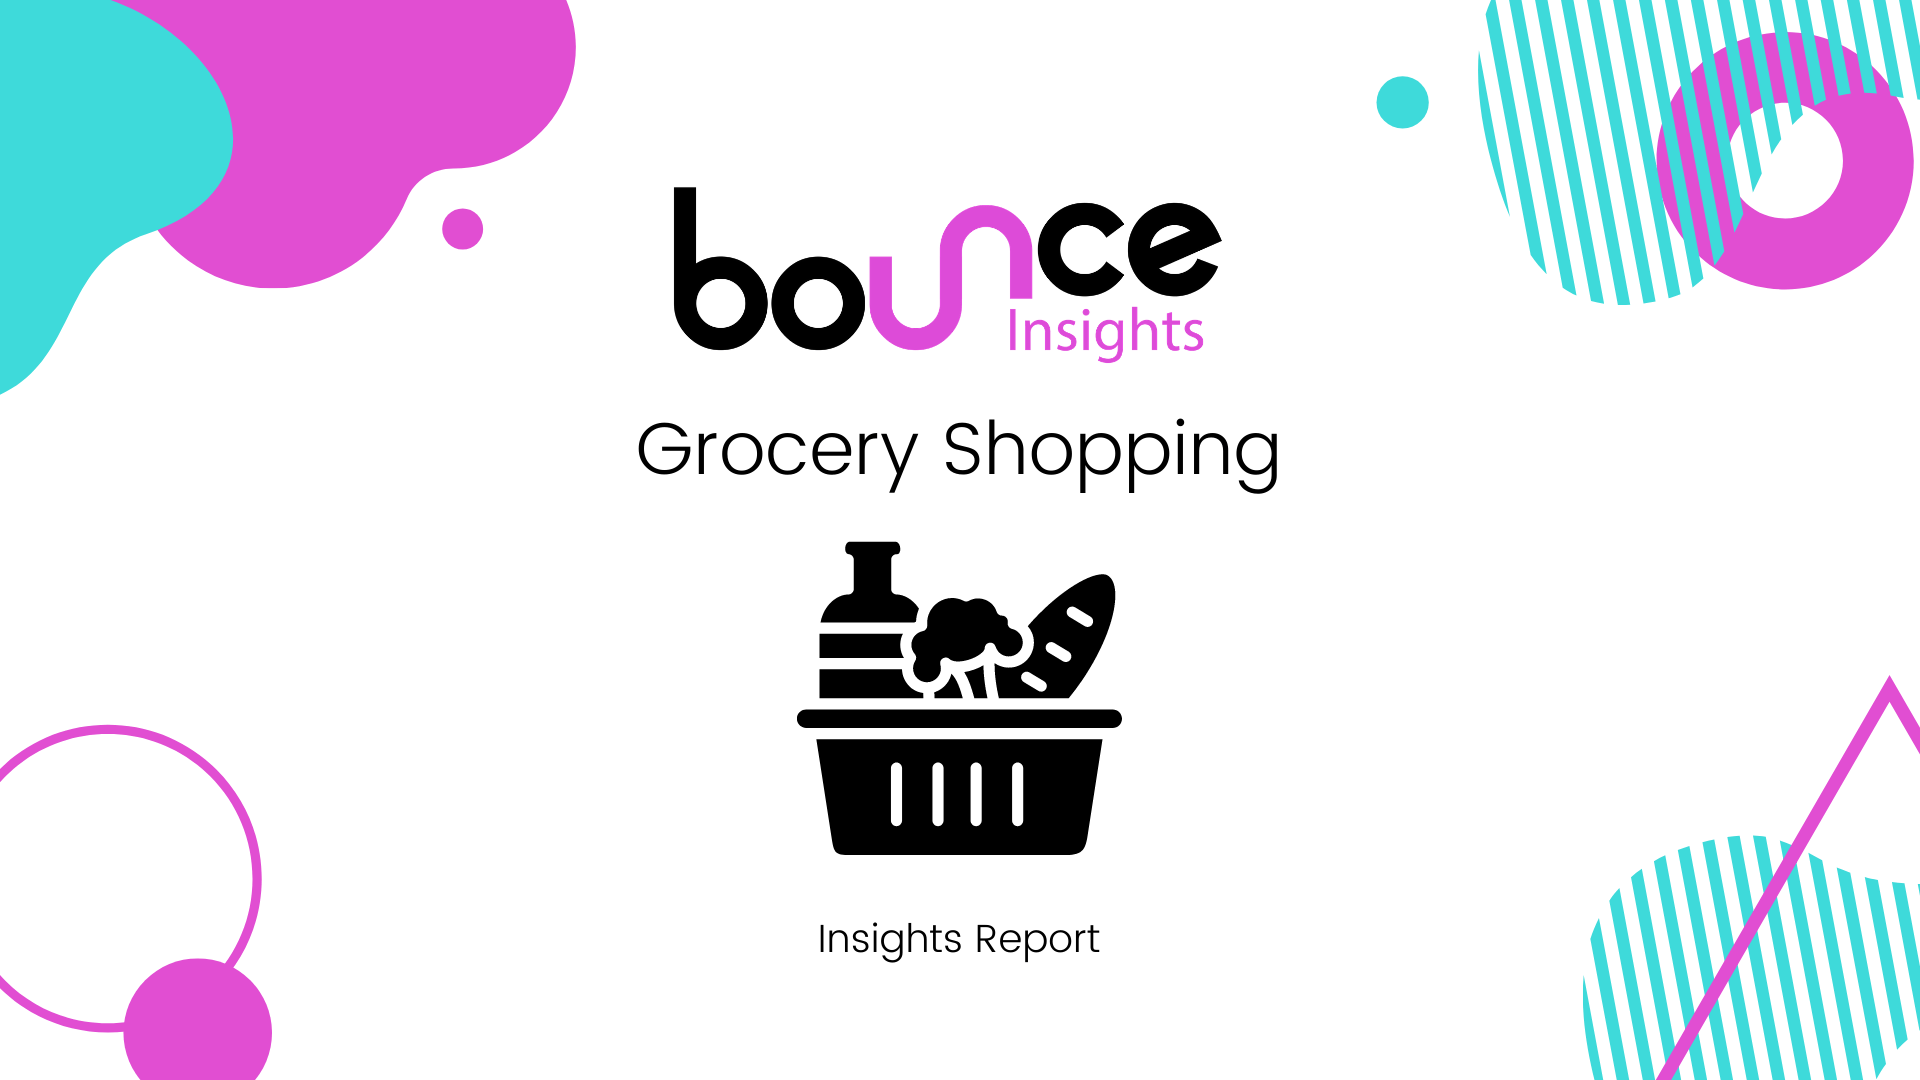 Bounce Insights Cover